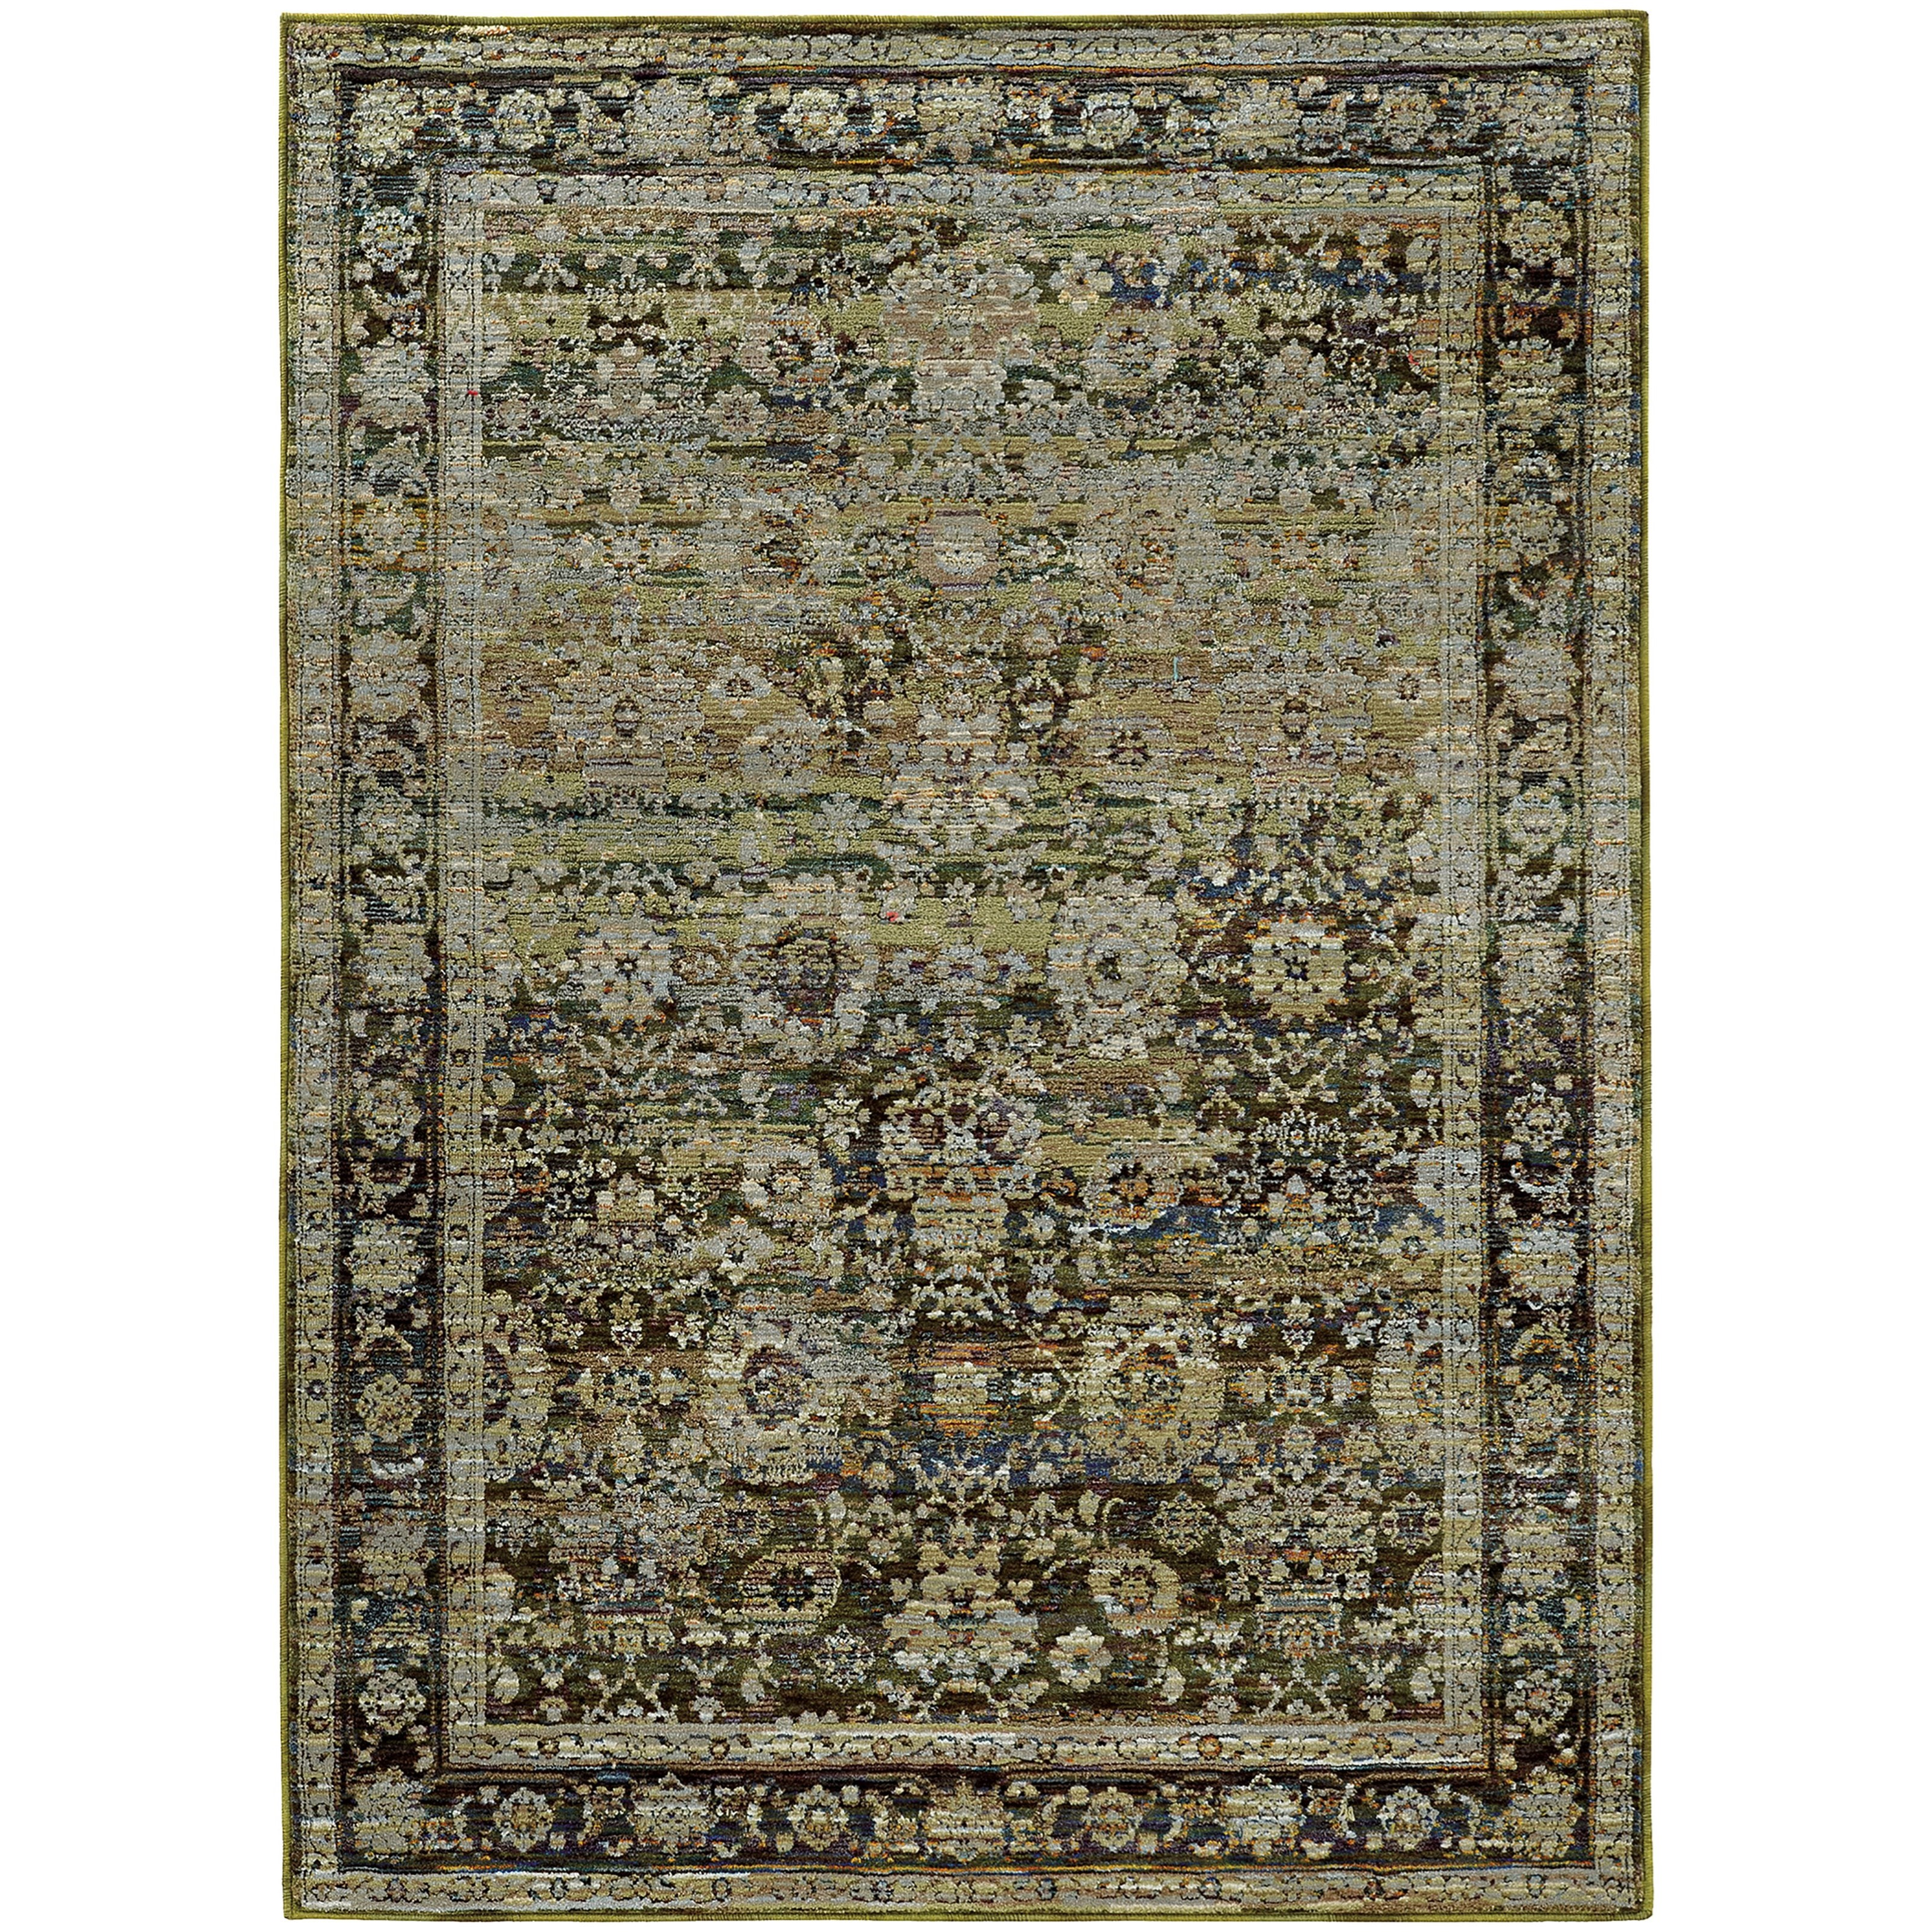 """Andorra 8' 6"""" X 11' 7"""" Casual Green/ Brown Rectangle by Oriental Weavers at Steger's Furniture"""